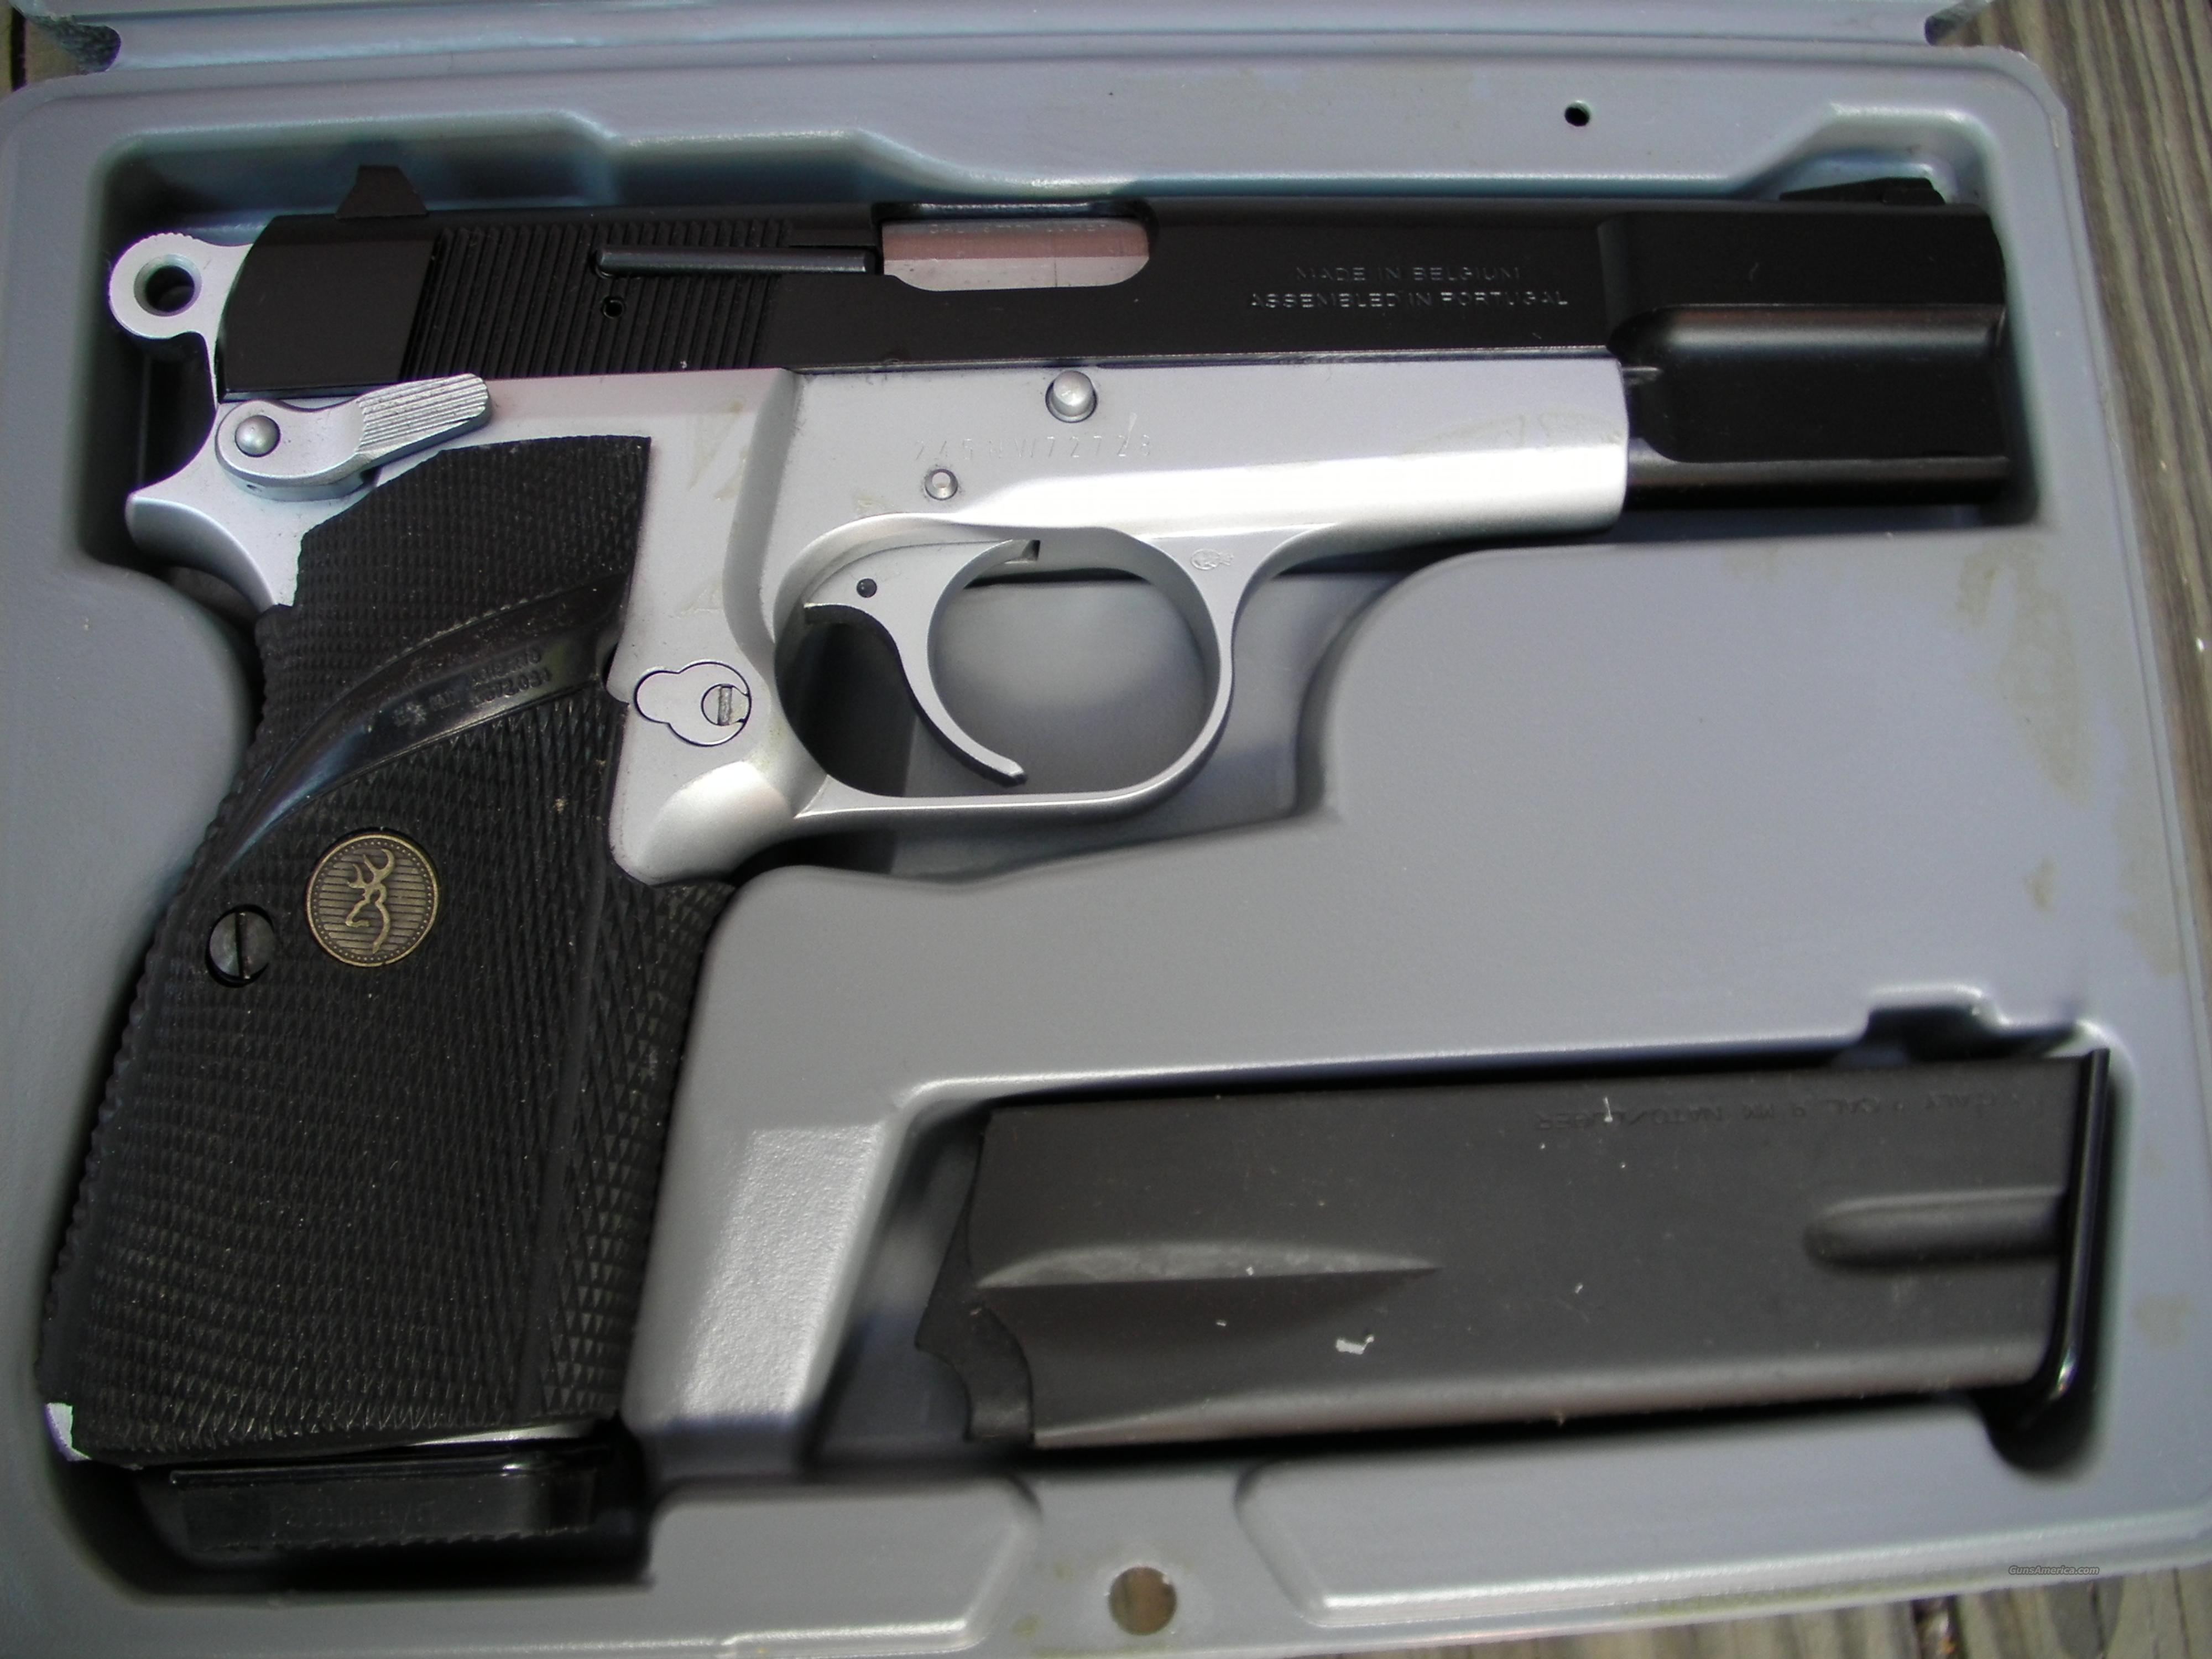 Browning Hi-Power Practical Duo-Tone 9mm  Guns > Pistols > Browning Pistols > Hi Power